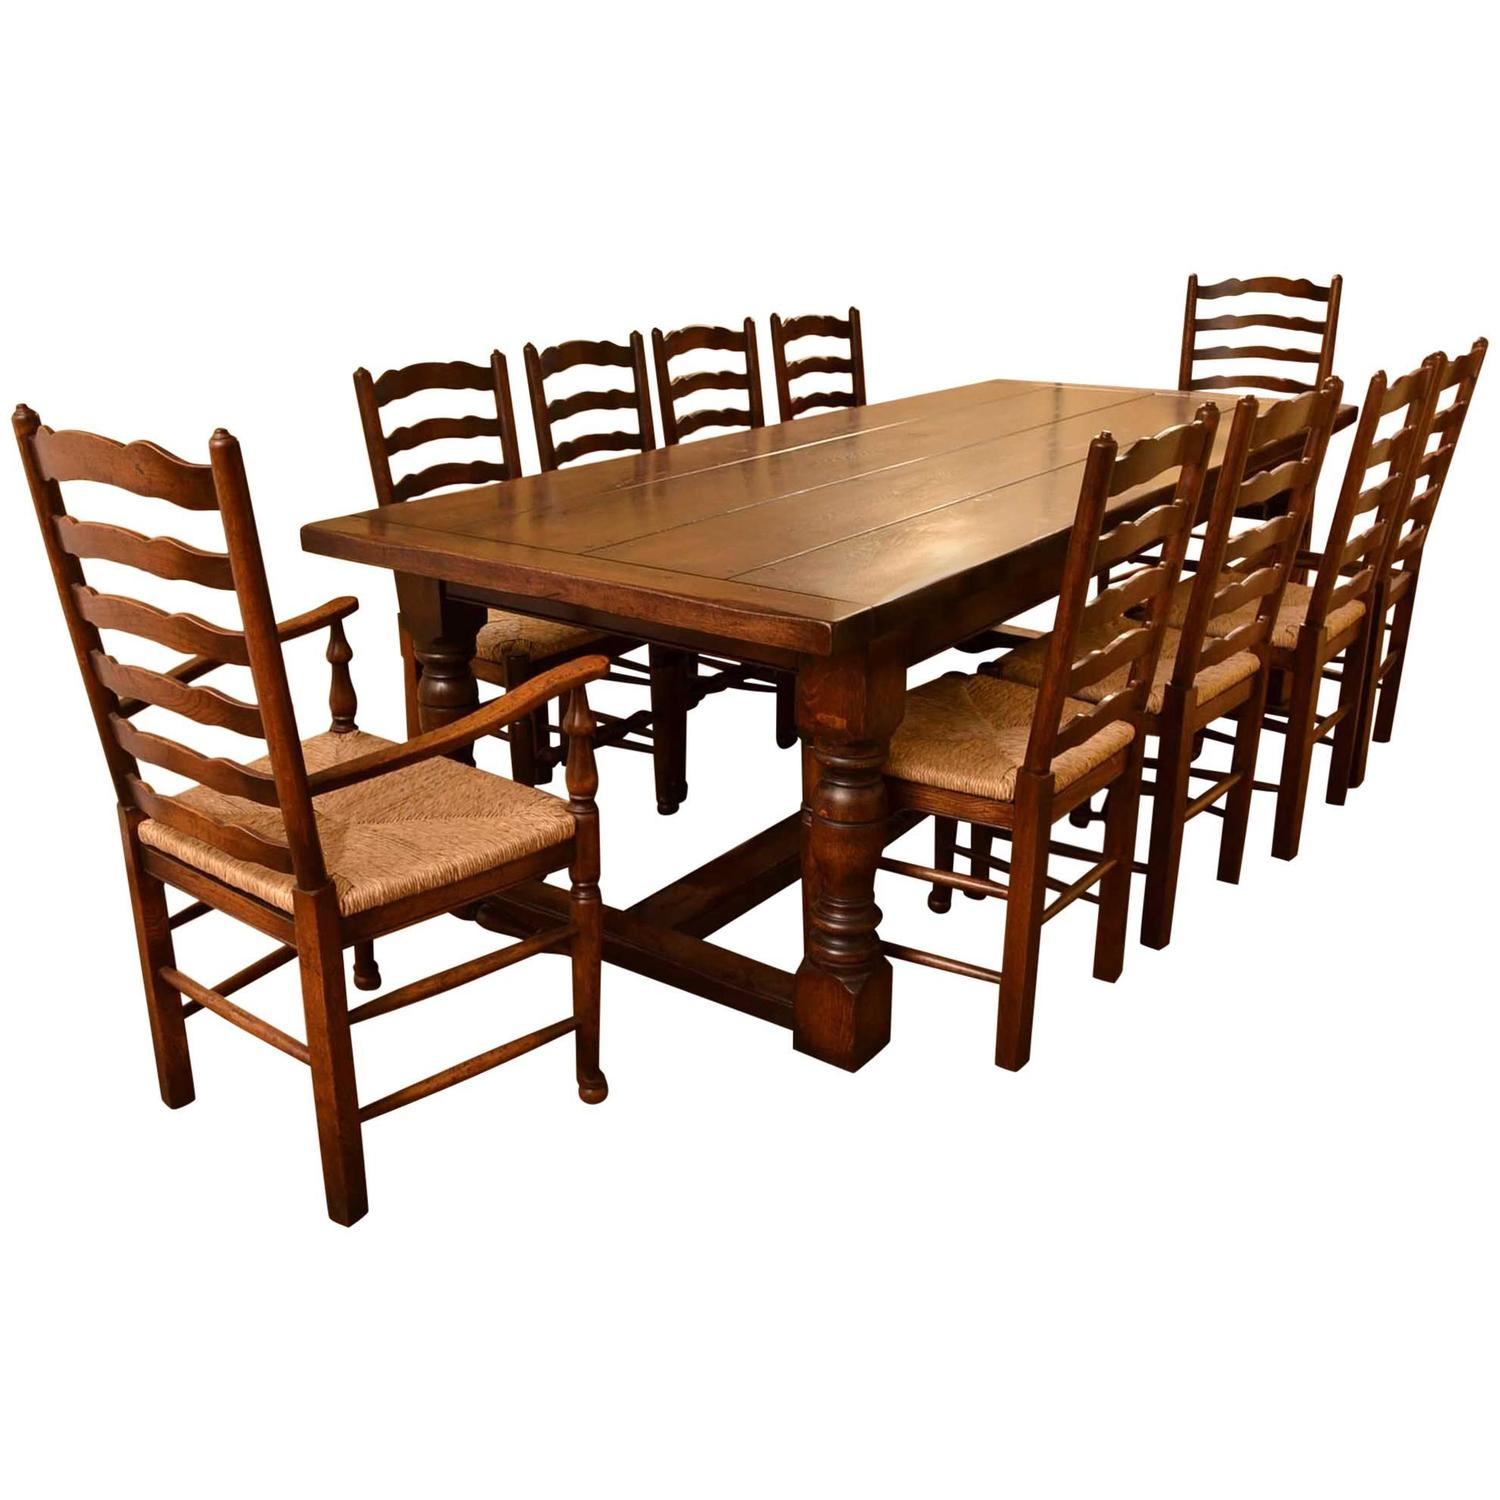 Dining Table Set For 10: Dining Tables And Chairs